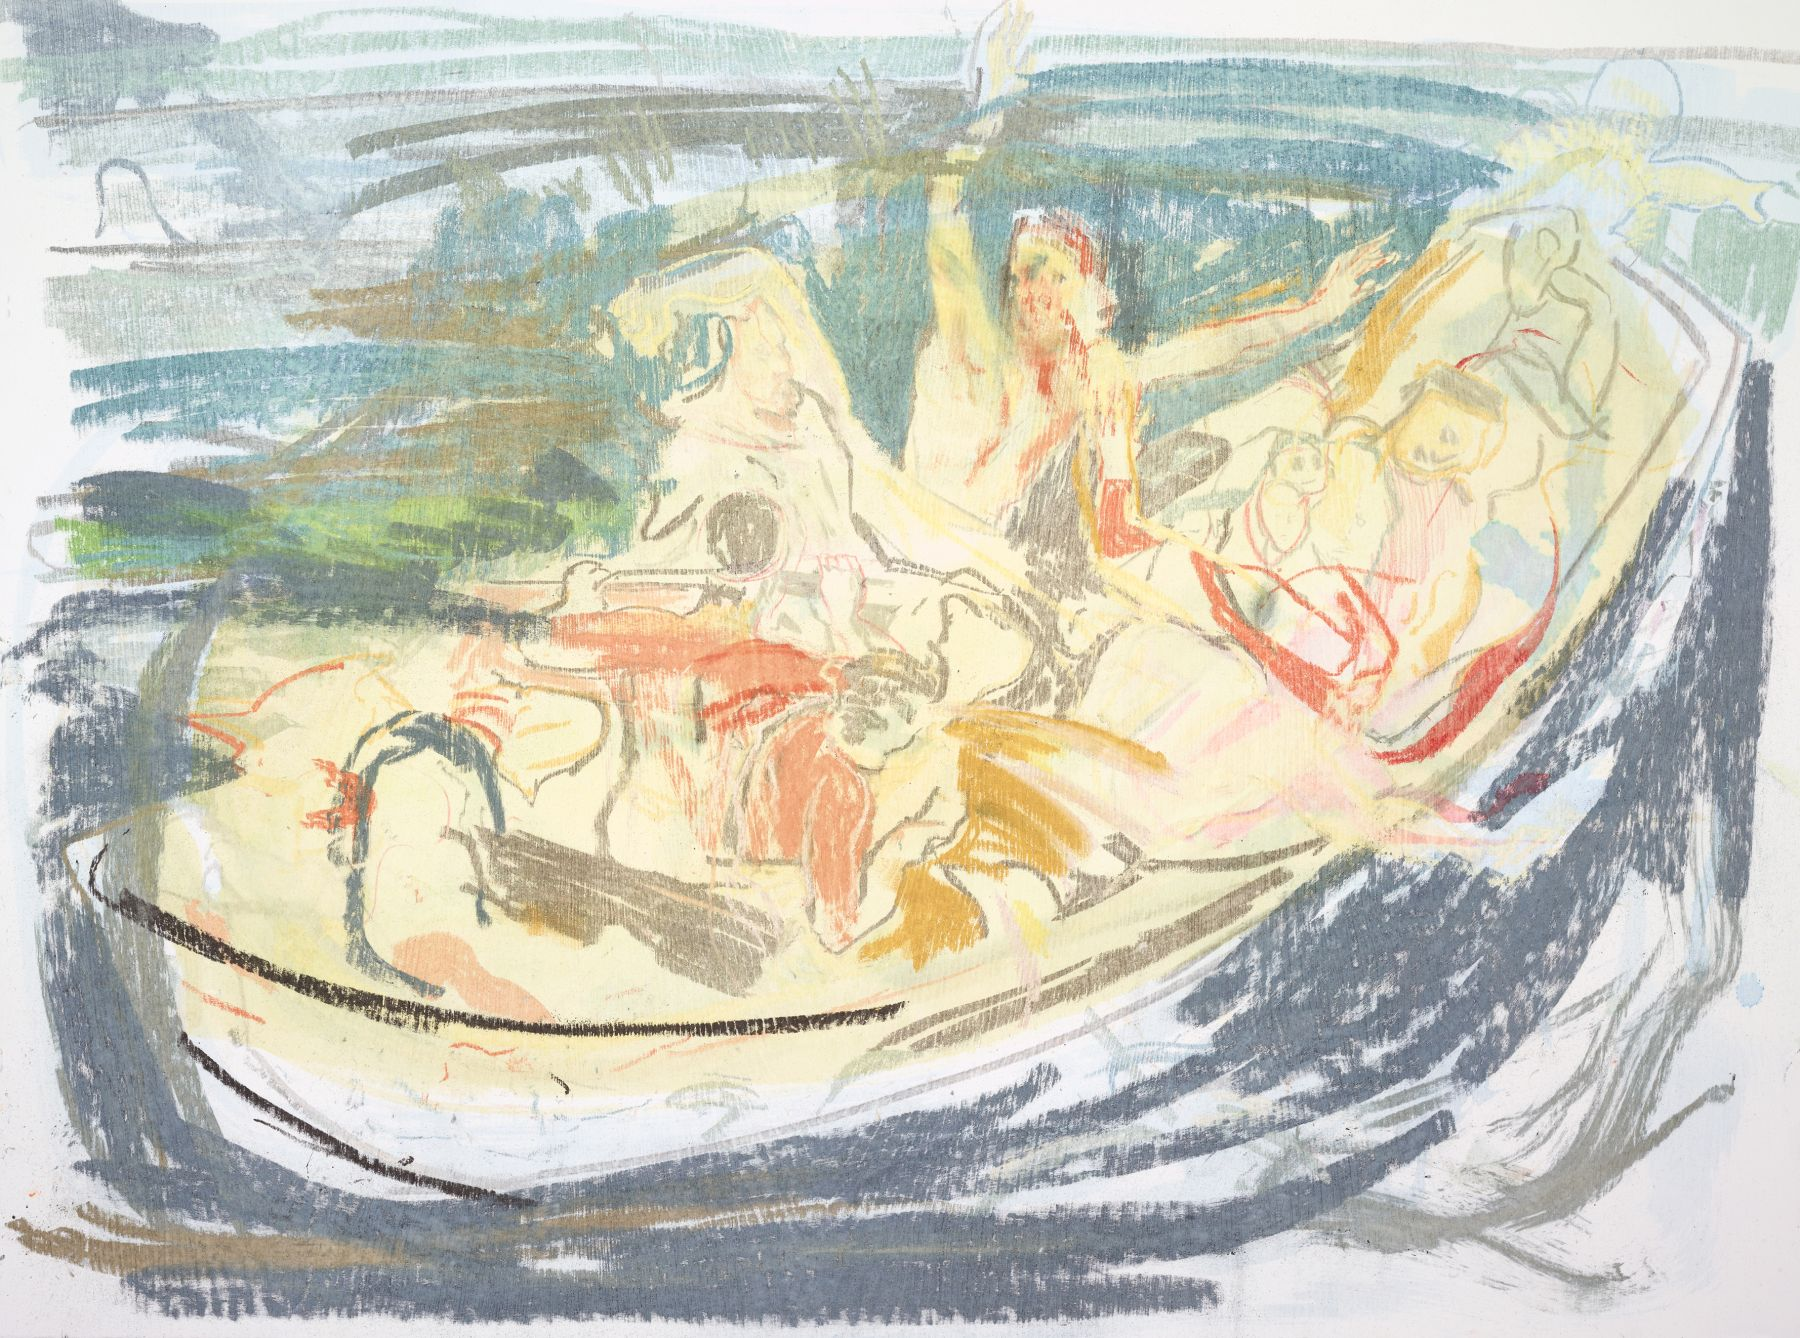 Cecily Brown, Christ Asleep During the Tempest (After Delacroix), 2016